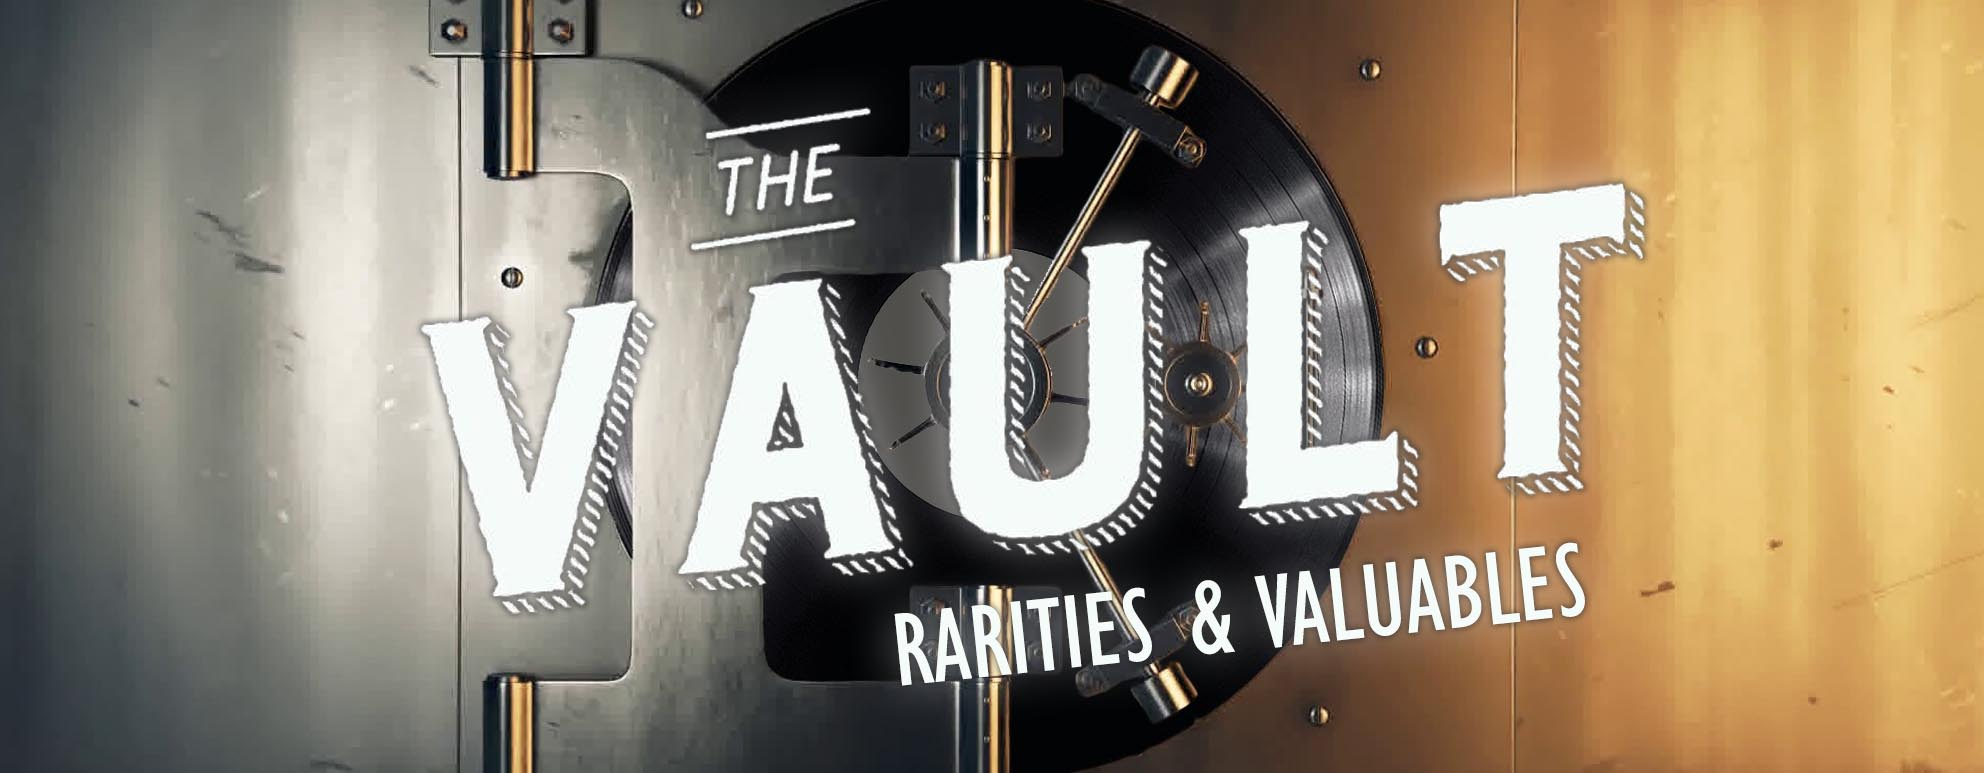 The Vault Rarities & Valuables